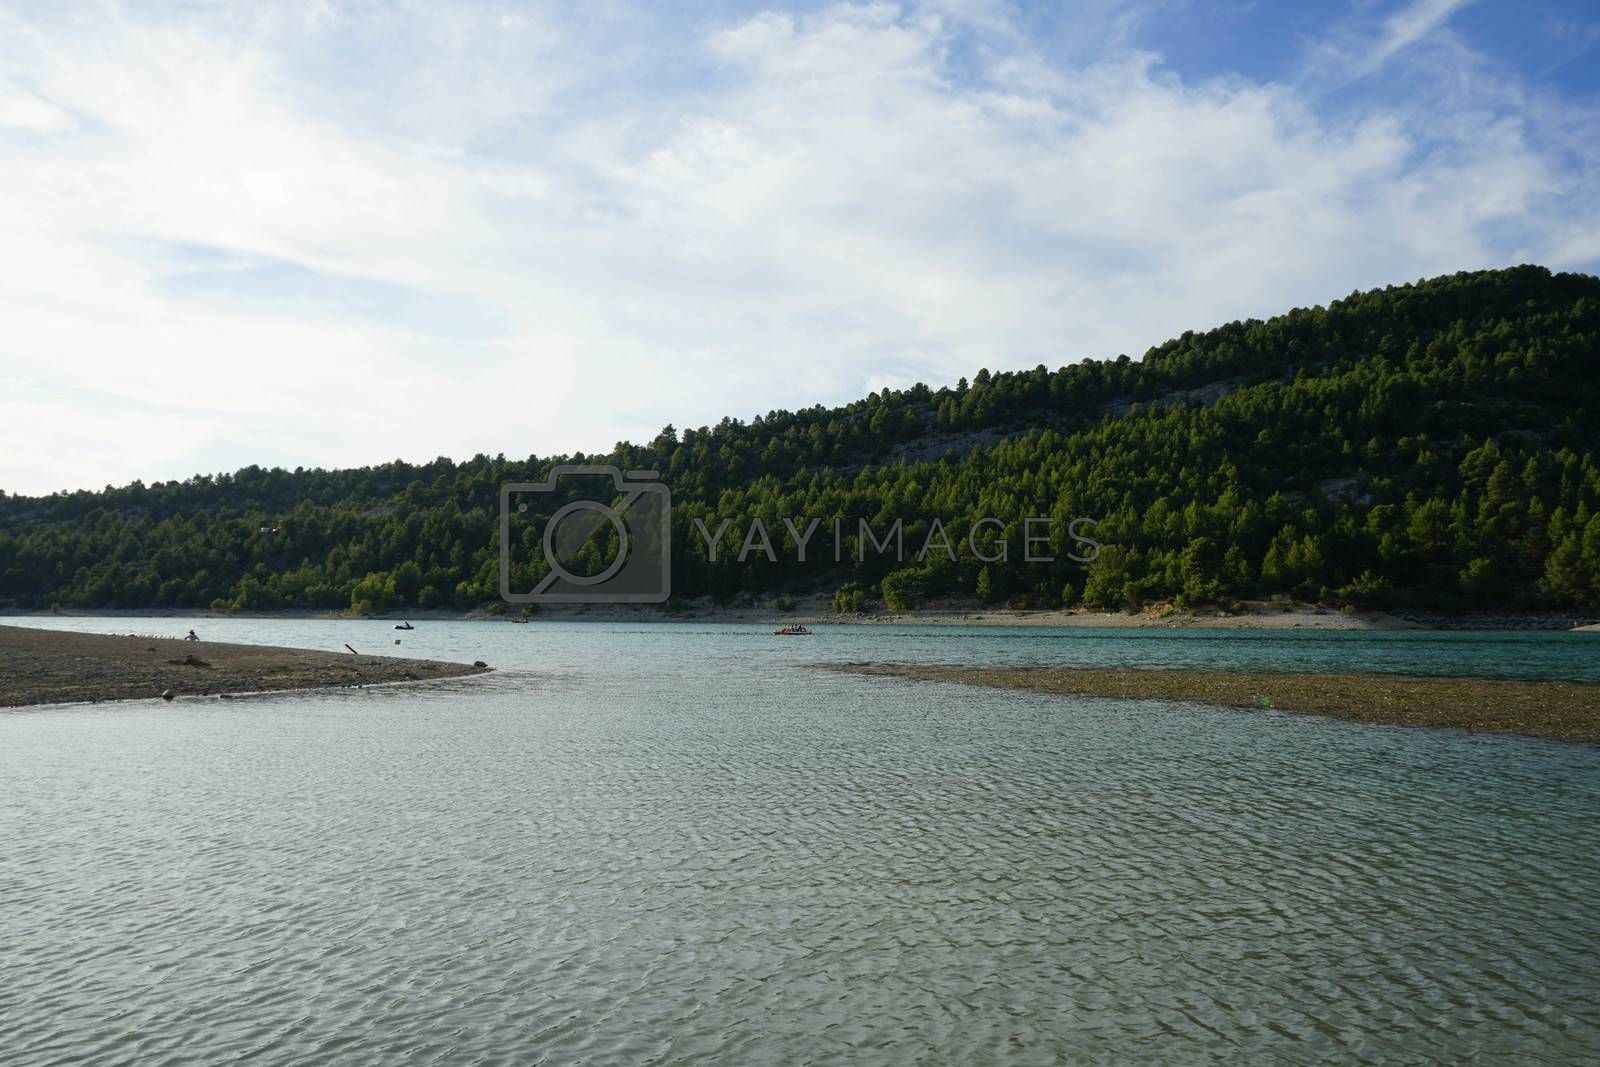 Overview of the reservoir that form the Sainte-Croix lake between the Verdon gorges, France